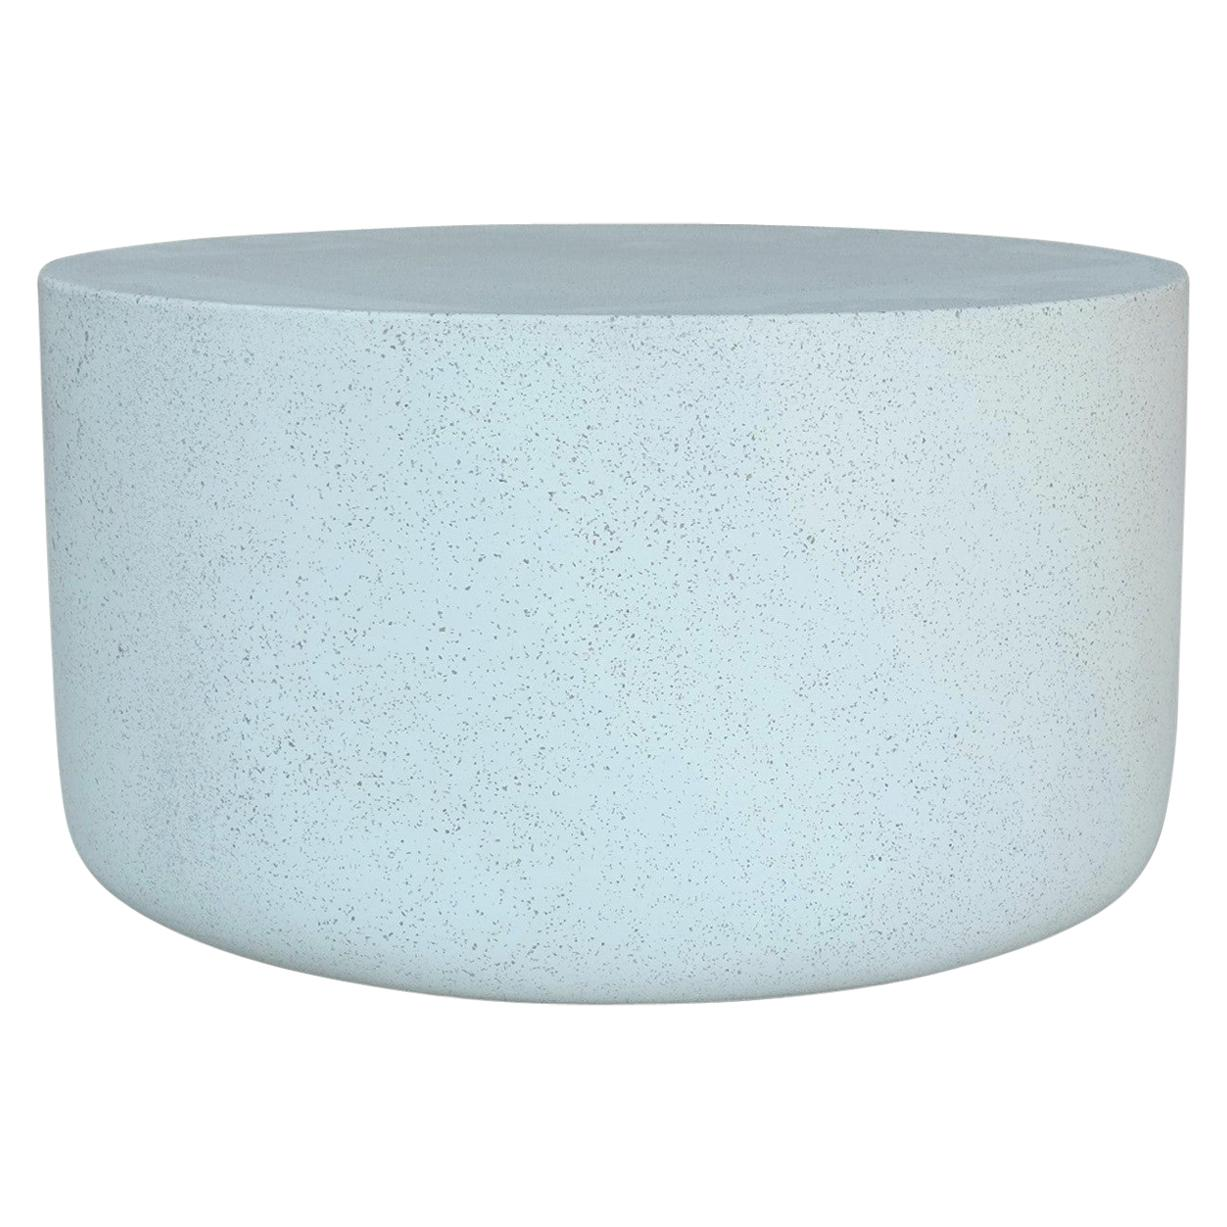 Cast Resin 'Millstone' Coffee Table, White Stone Finish by Zachary A. Design